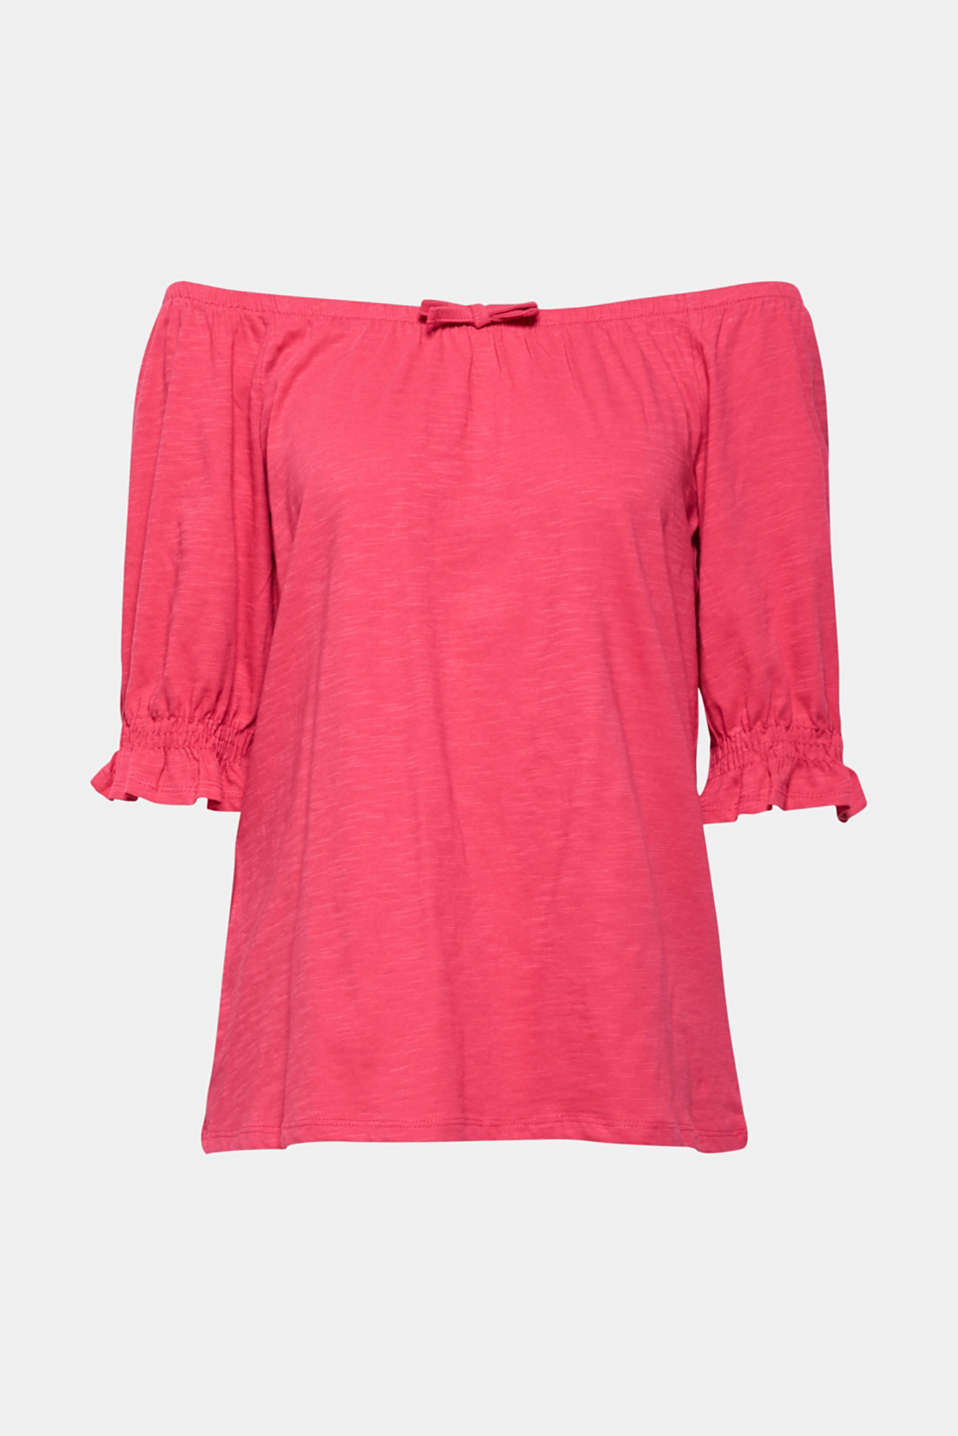 Carmen top with organic cotton, 100% cotton, PINK FUCHSIA, detail image number 6